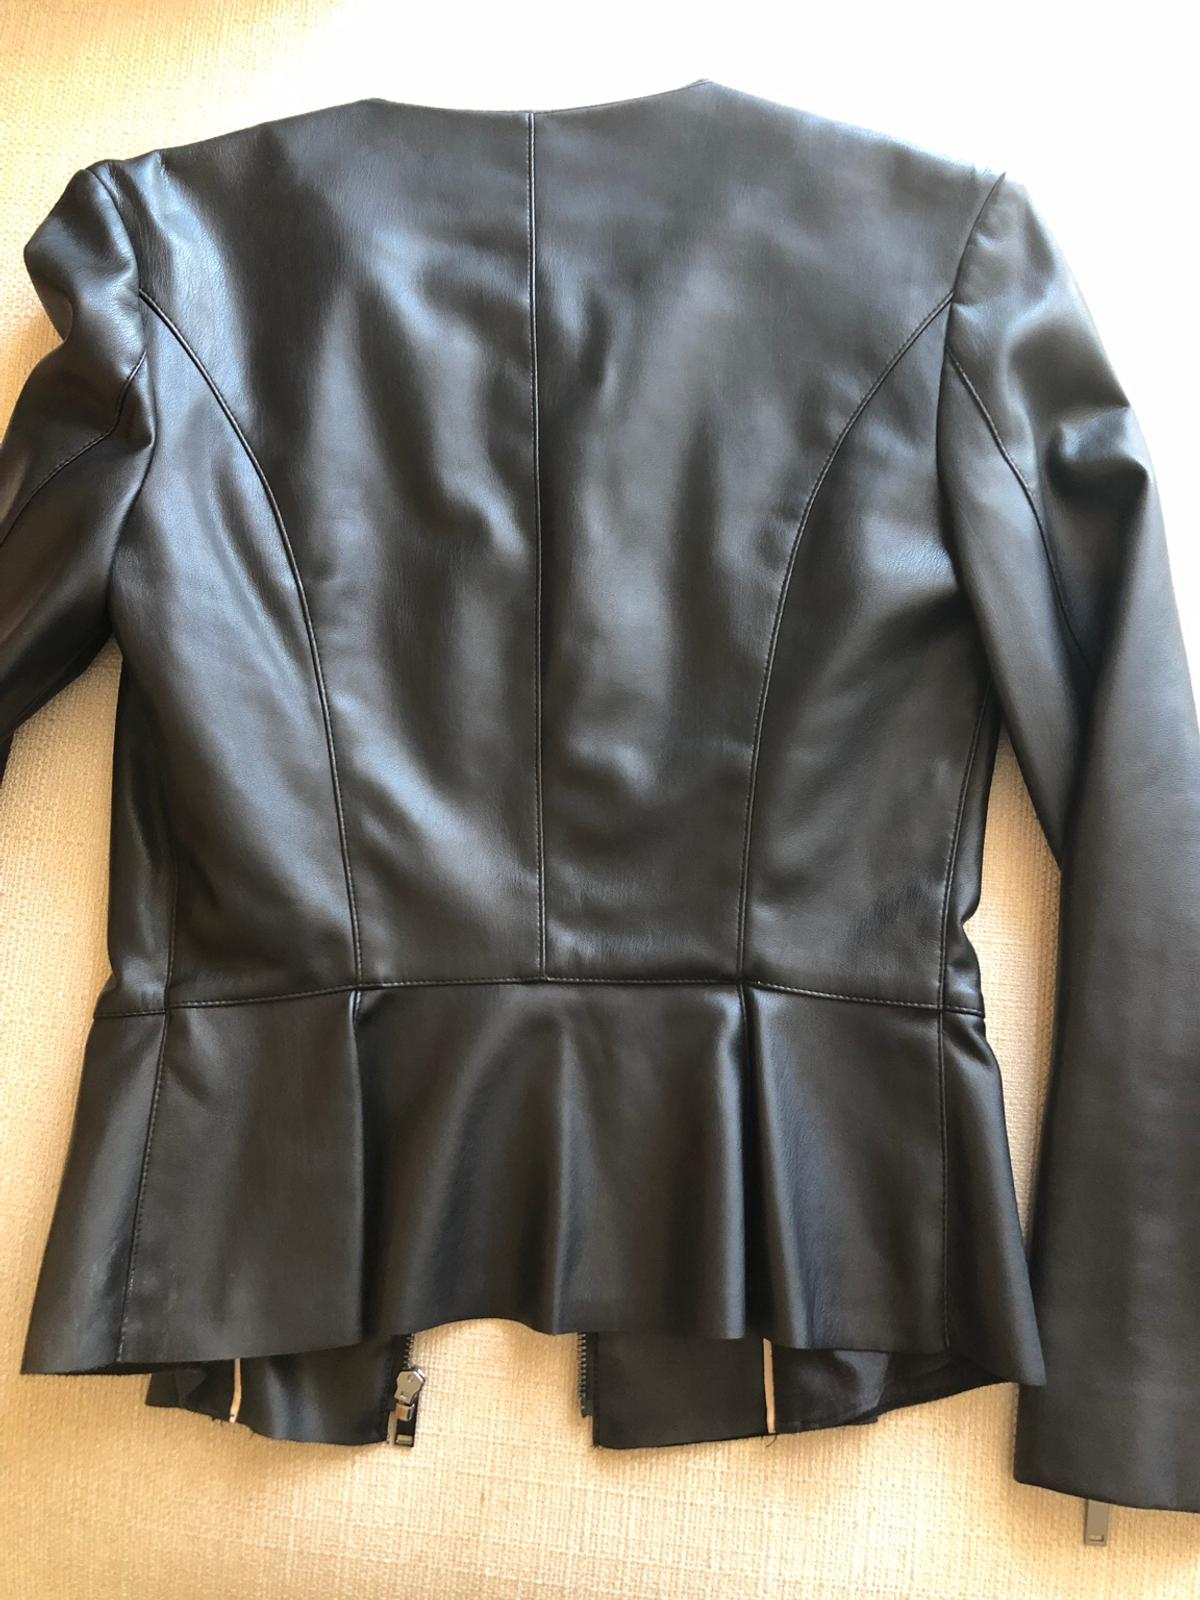 reputable site 40a08 13f7a Giacca ecopelle Zara donna